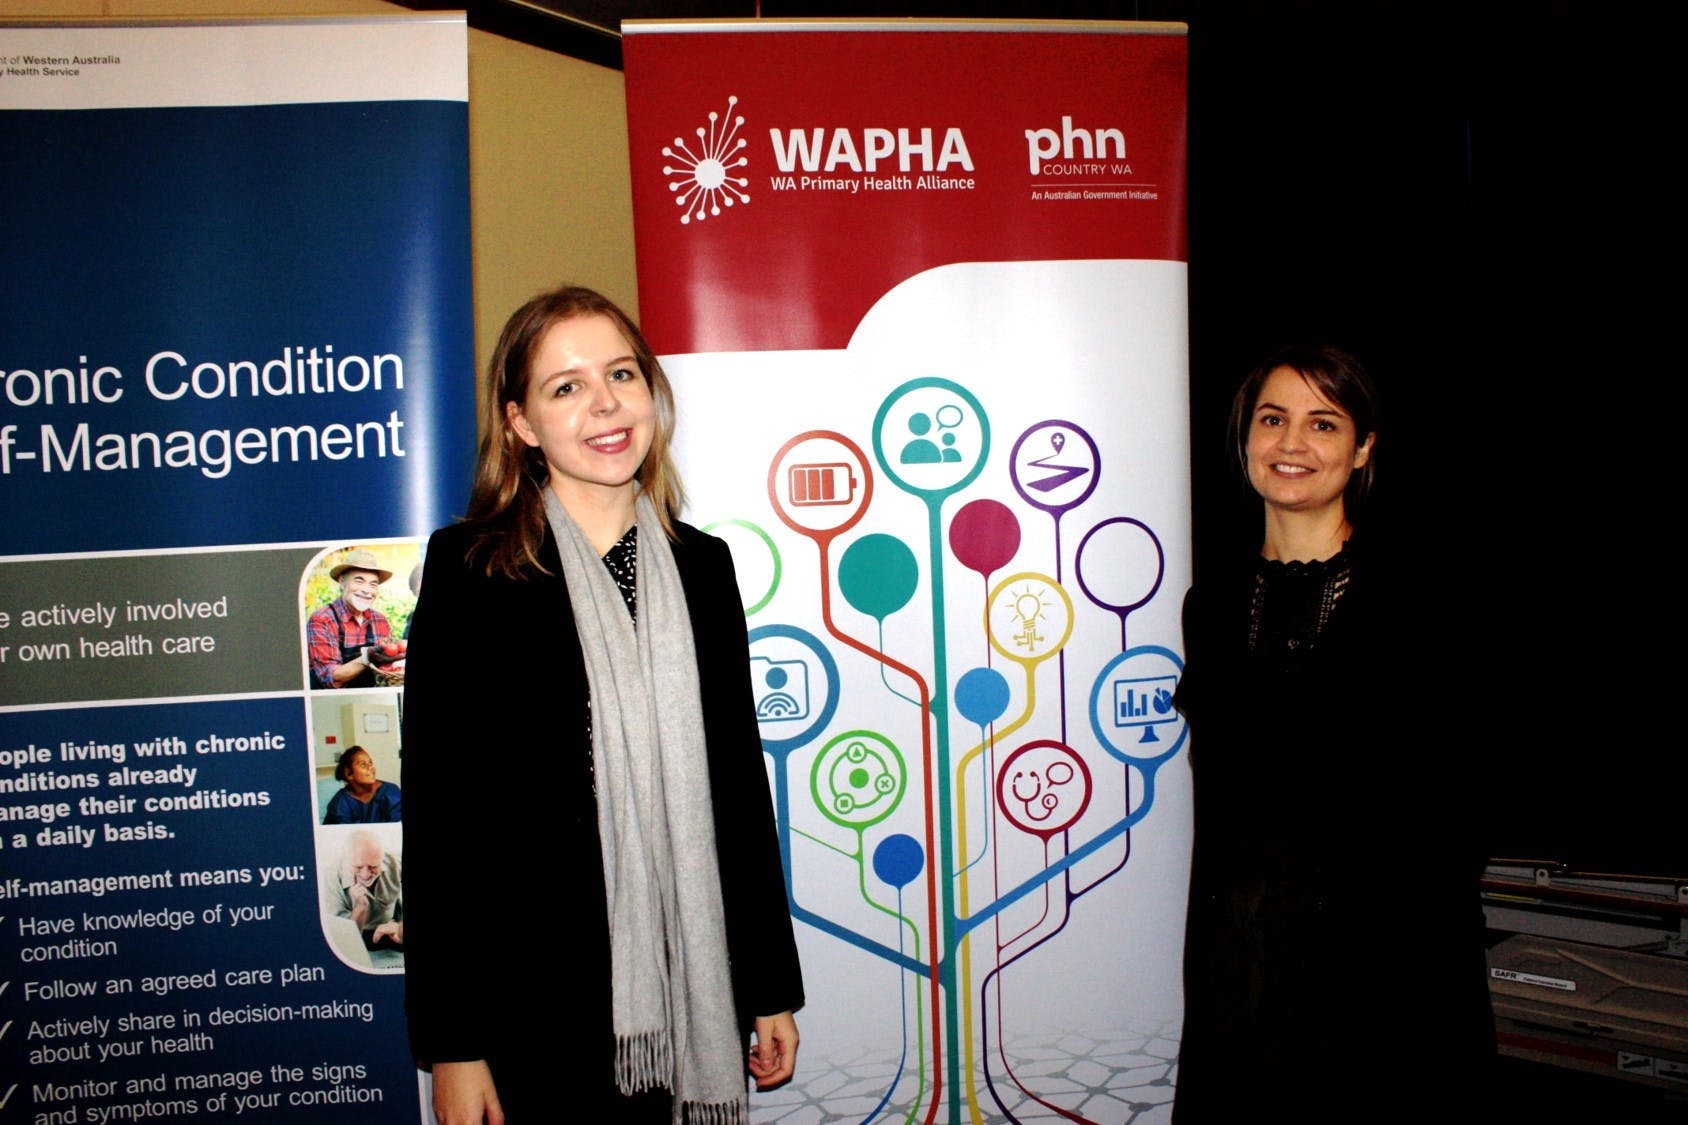 HealthPathways WA & Health Consumers' Council